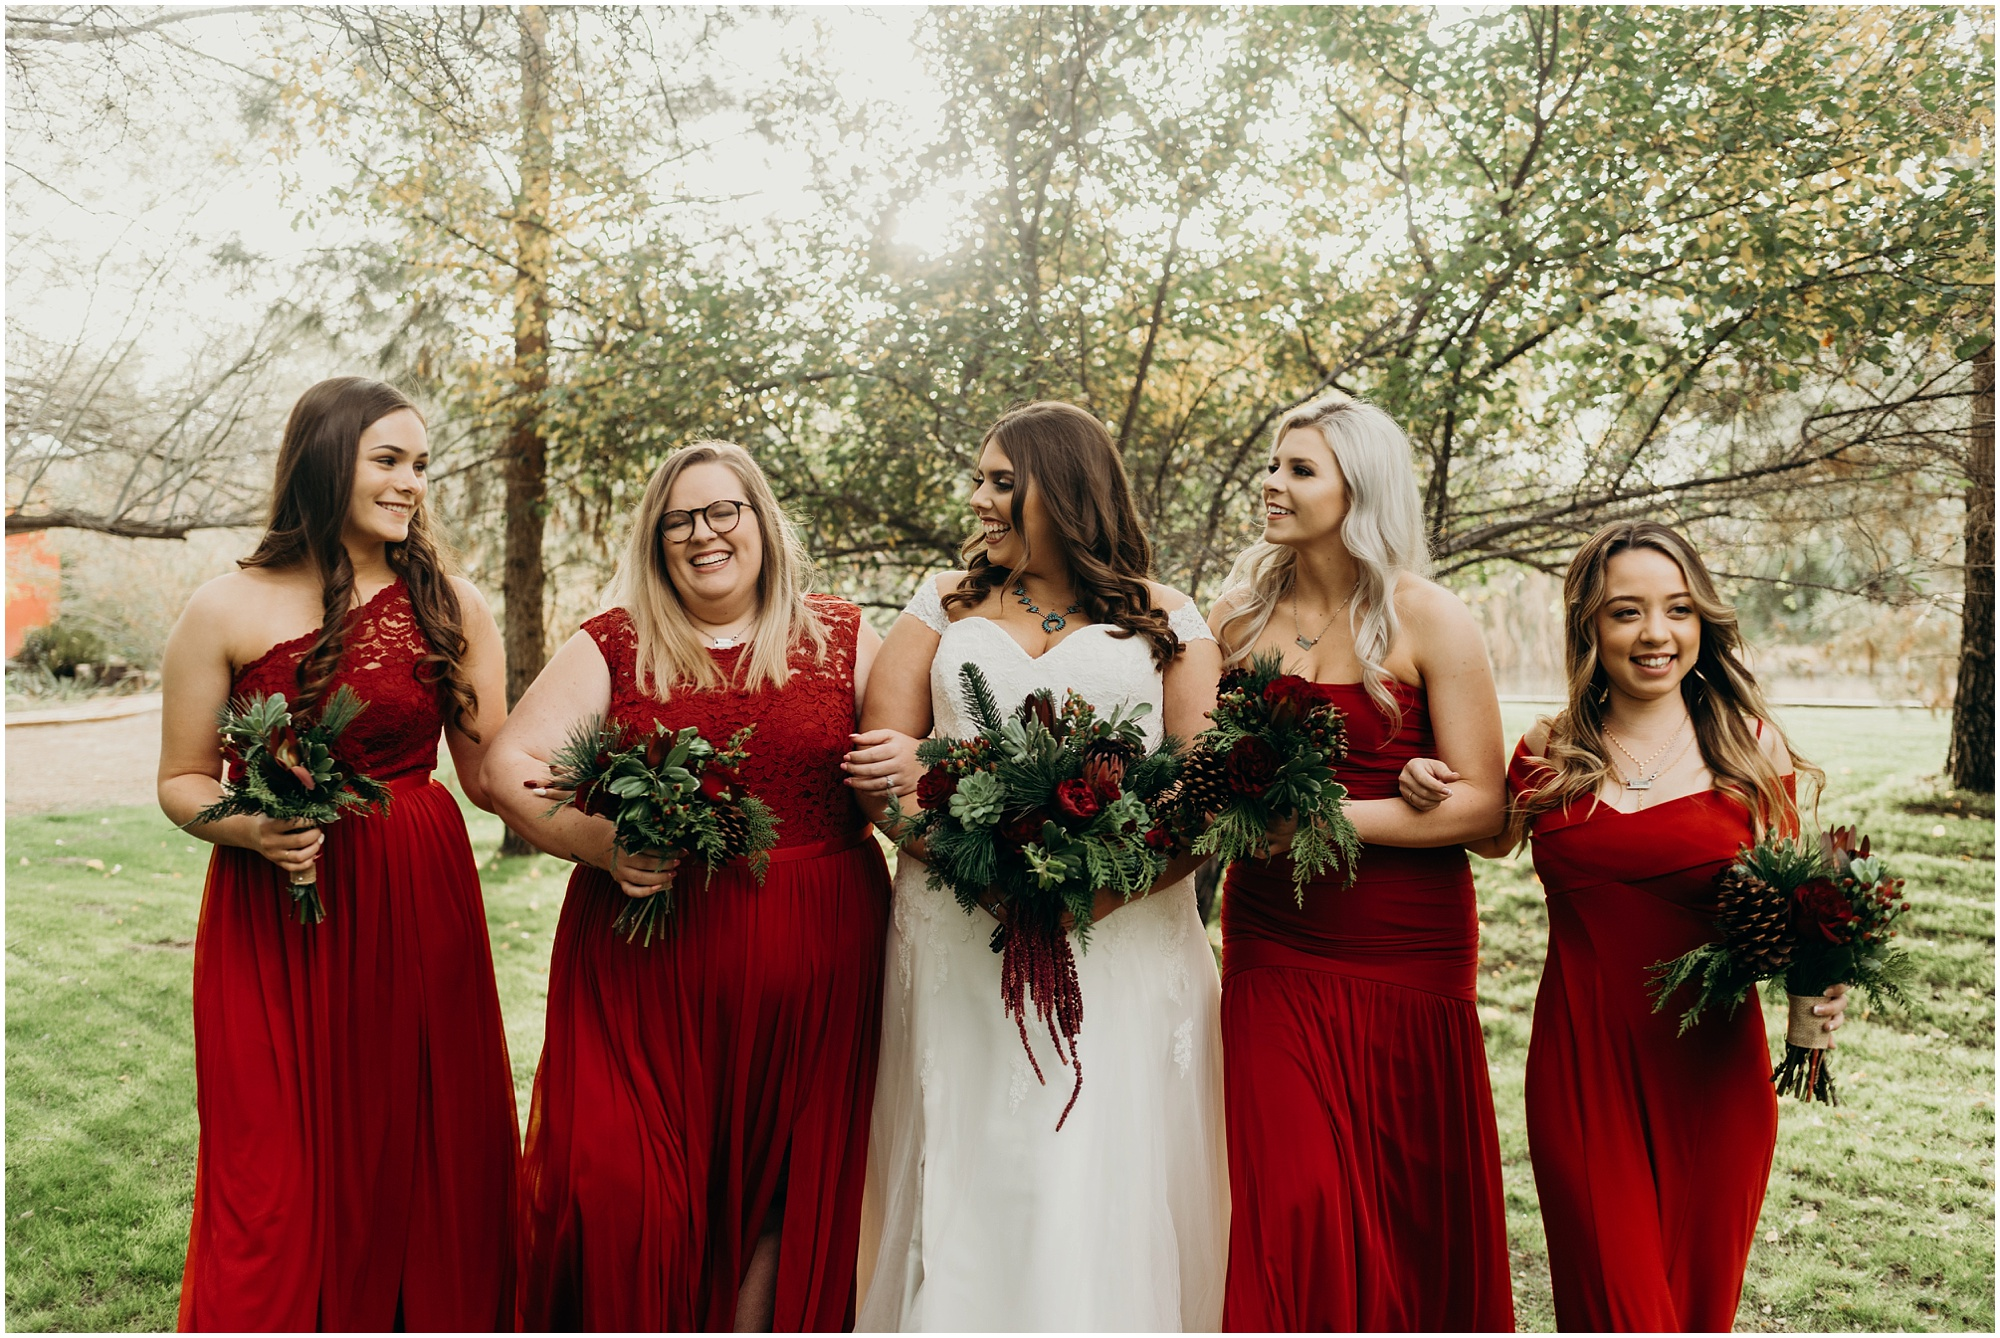 Candid and fun bridesmaids photos with red bridesmaids dresses for a Christmas Wedding.